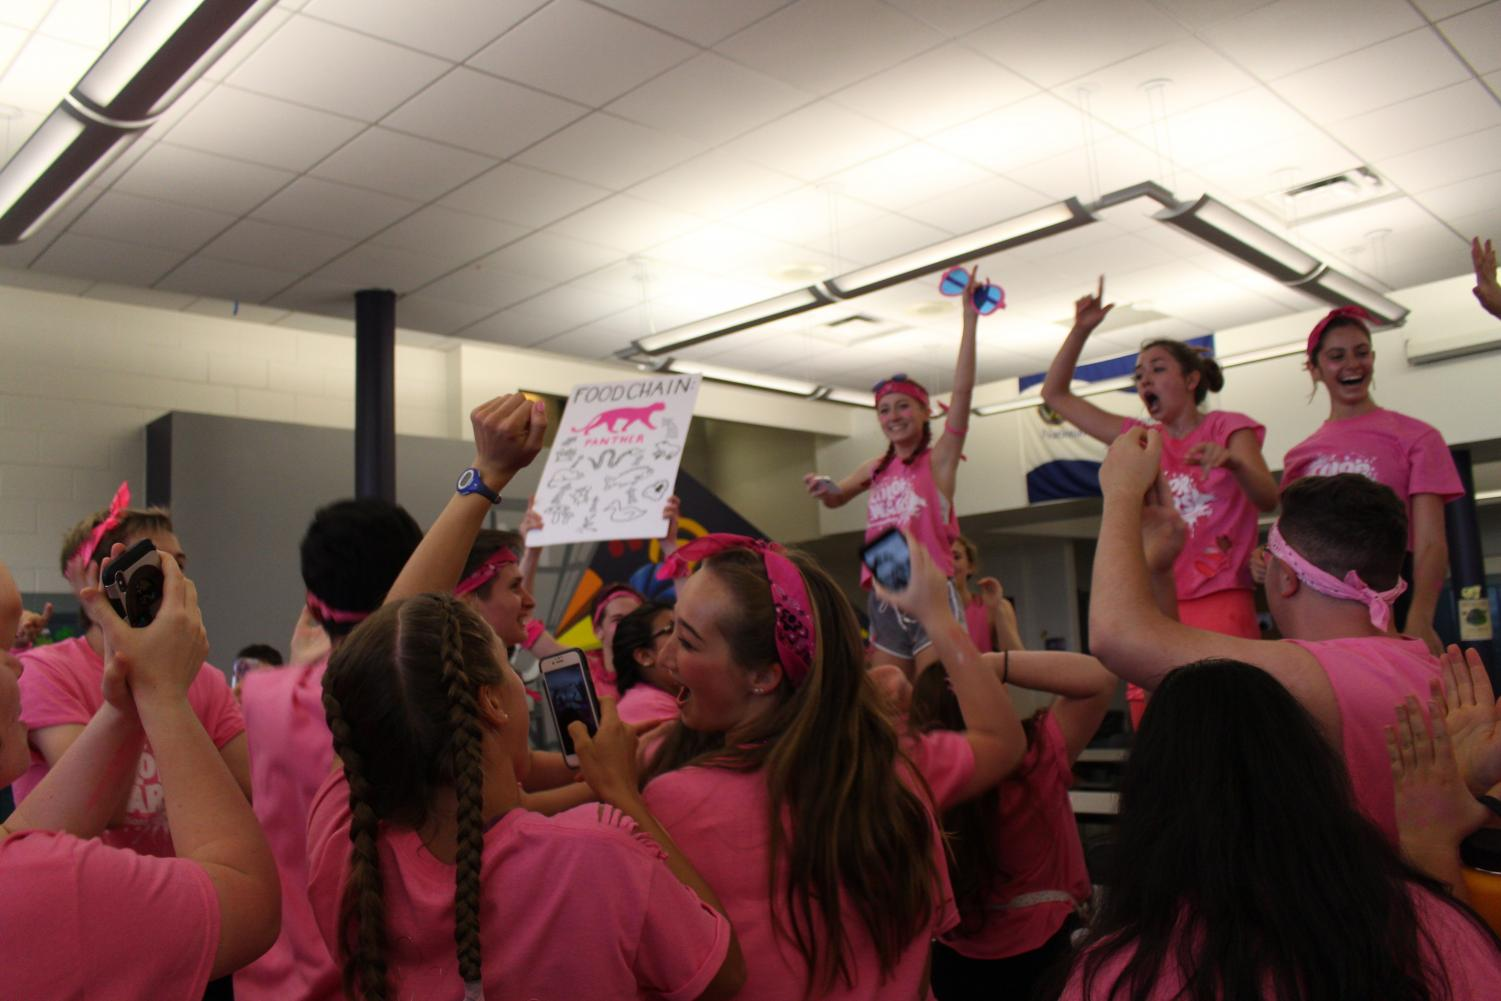 Color+Wars+concluded+with+the+Pink+Team+coming+in+first+place%2C+the+Purple+Team+in+second+place+and+the+White+Team+in+third.+